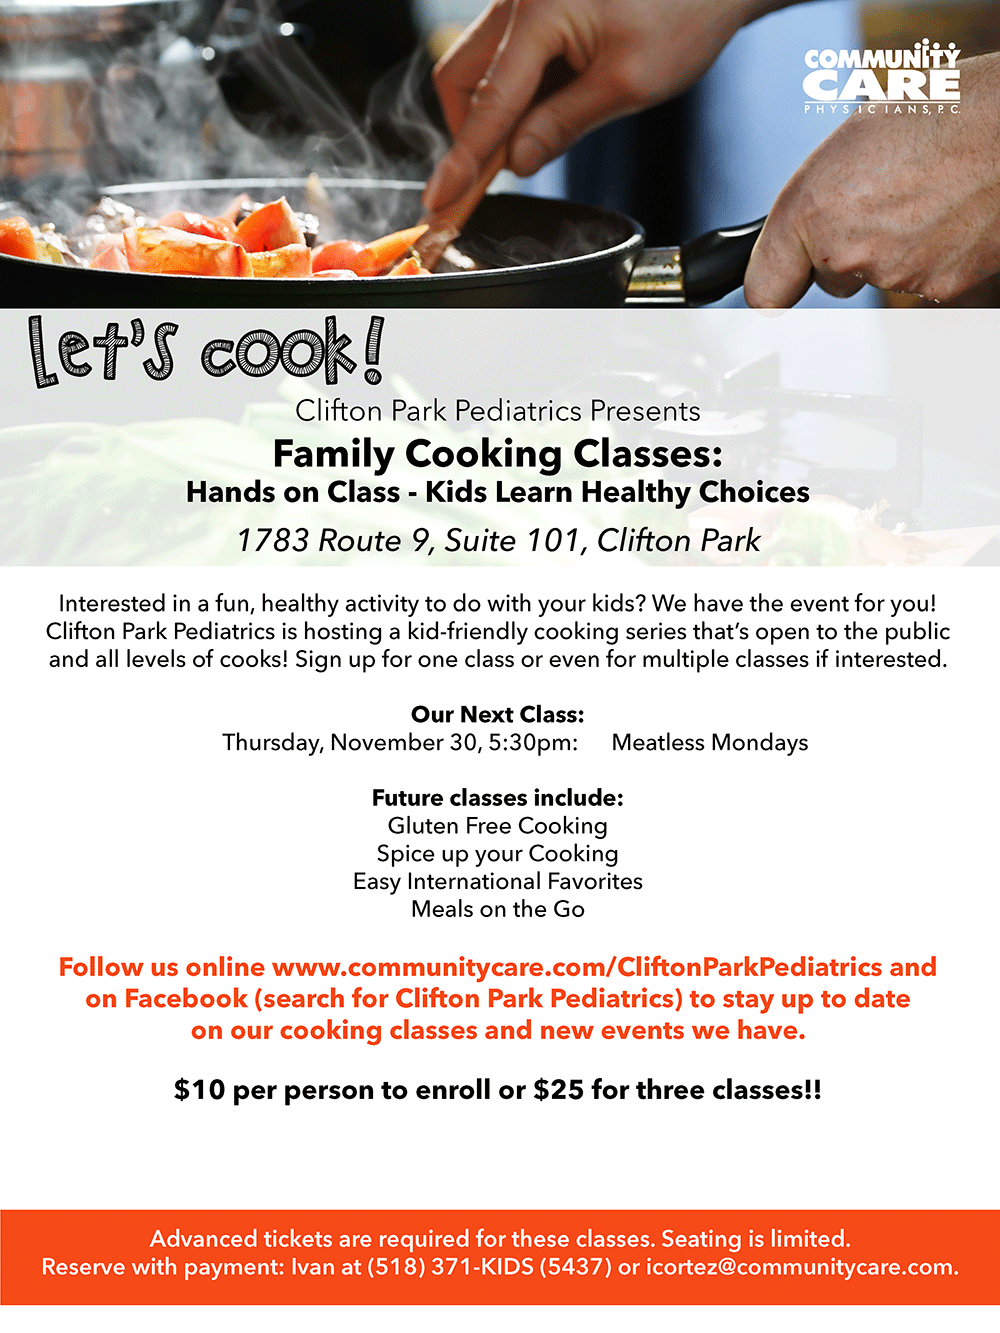 Clifton Park Pediatrics Presents - Family Cooking Classes: Meatless Mondays